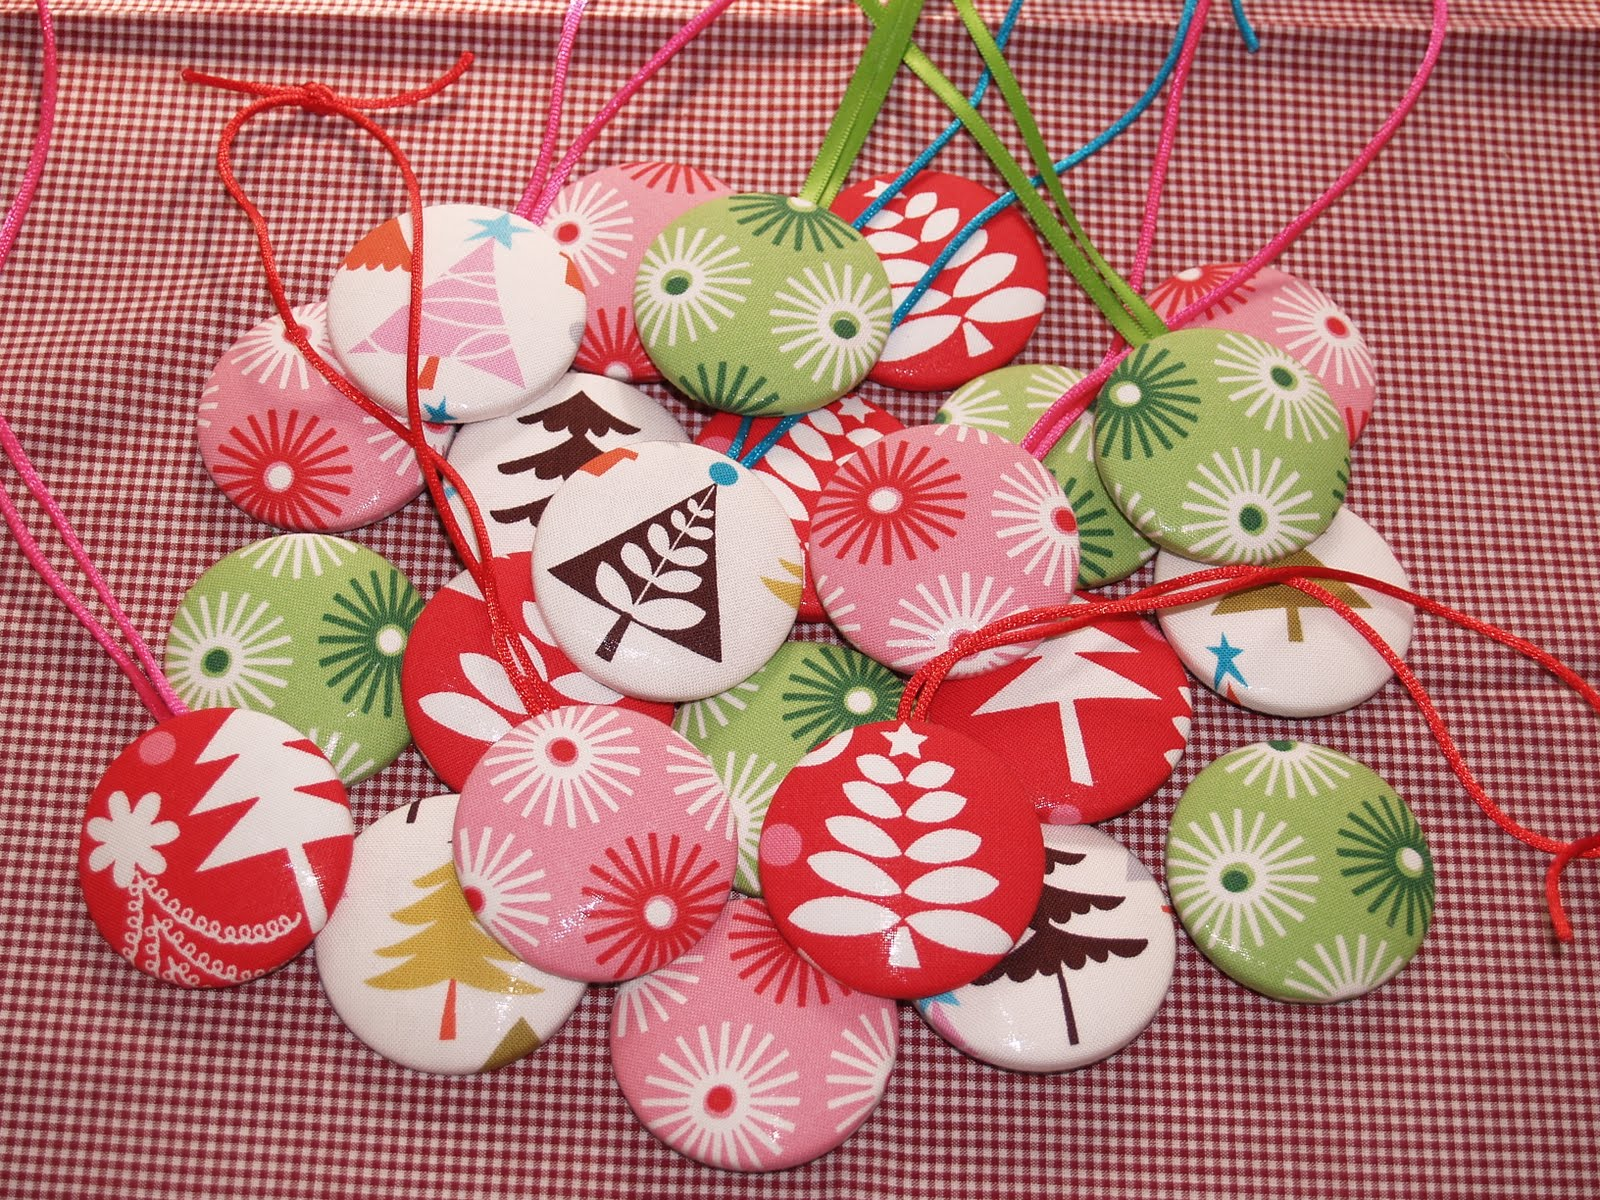 #A82328 Jackobindi: NEW FABRIC BUTTON CHRISTMAS DECORATIONS DIY KITS 5933 décoration de noel manuelle 1600x1200 px @ aertt.com